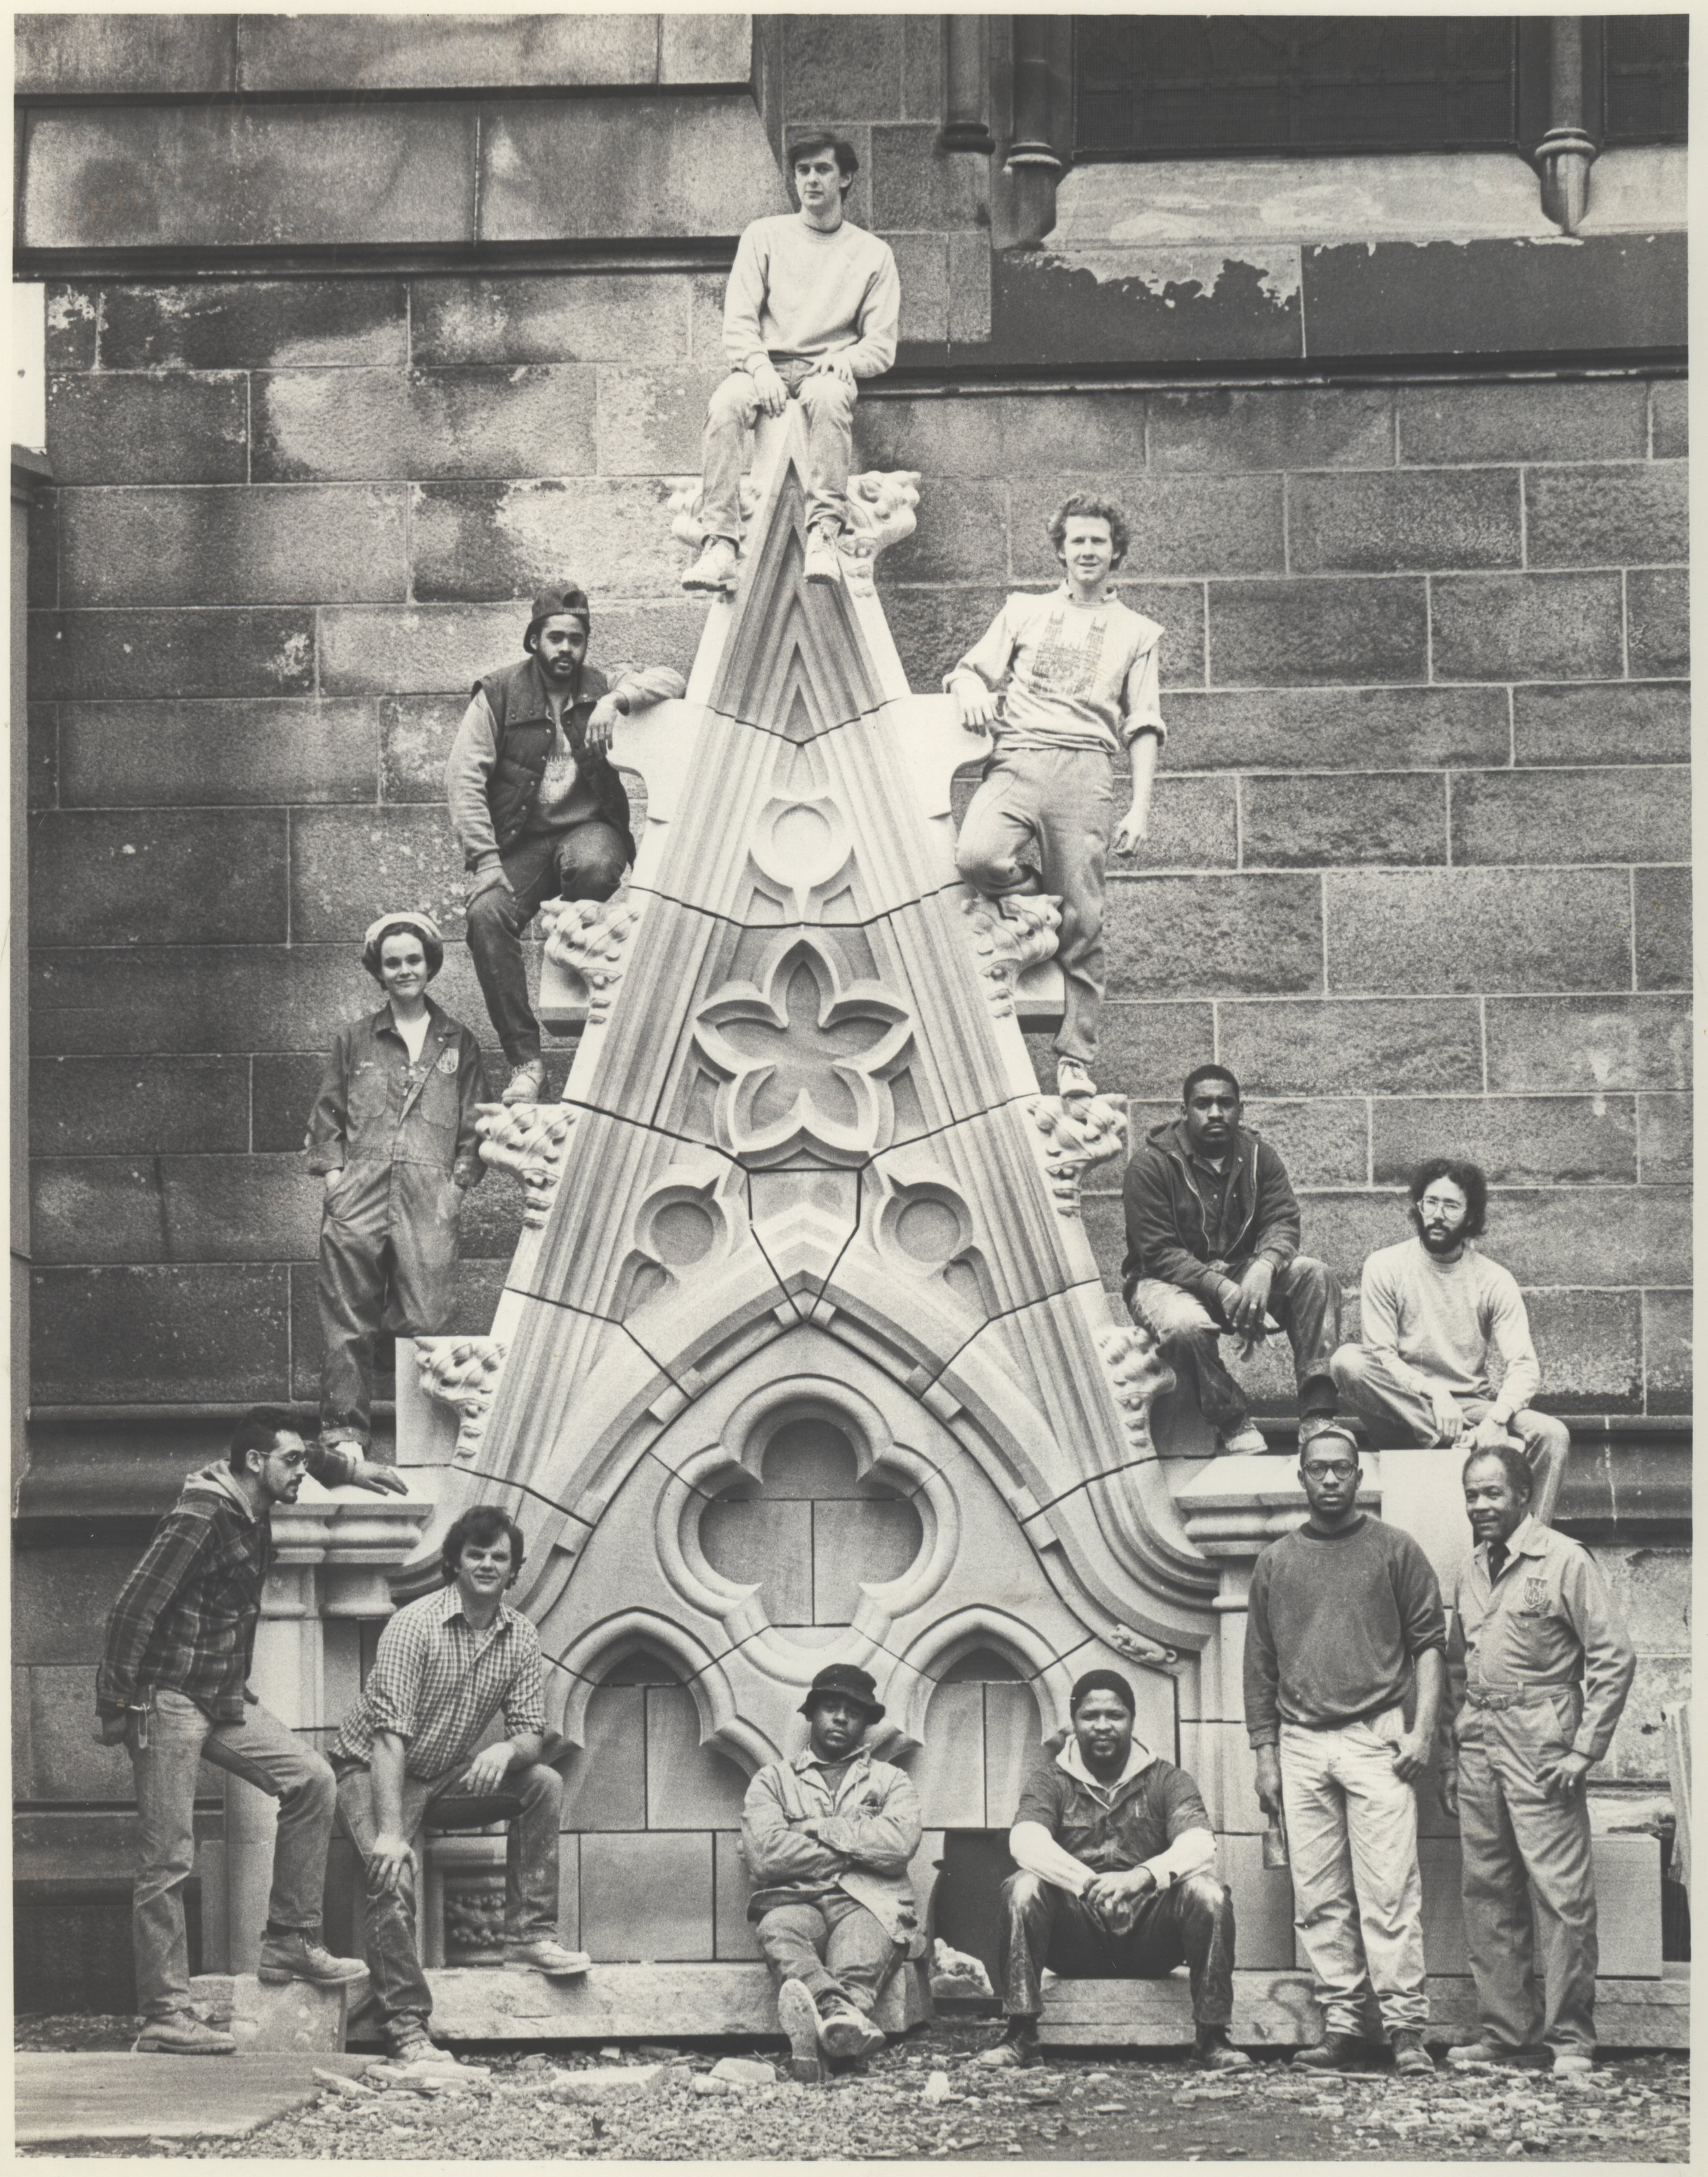 1980s: Group portrait of the stone masons. There was something modular about this approach to construction: each stone represented a discrete finish line and accomplishment. Credit: Episcopal Diocese of New York Archives